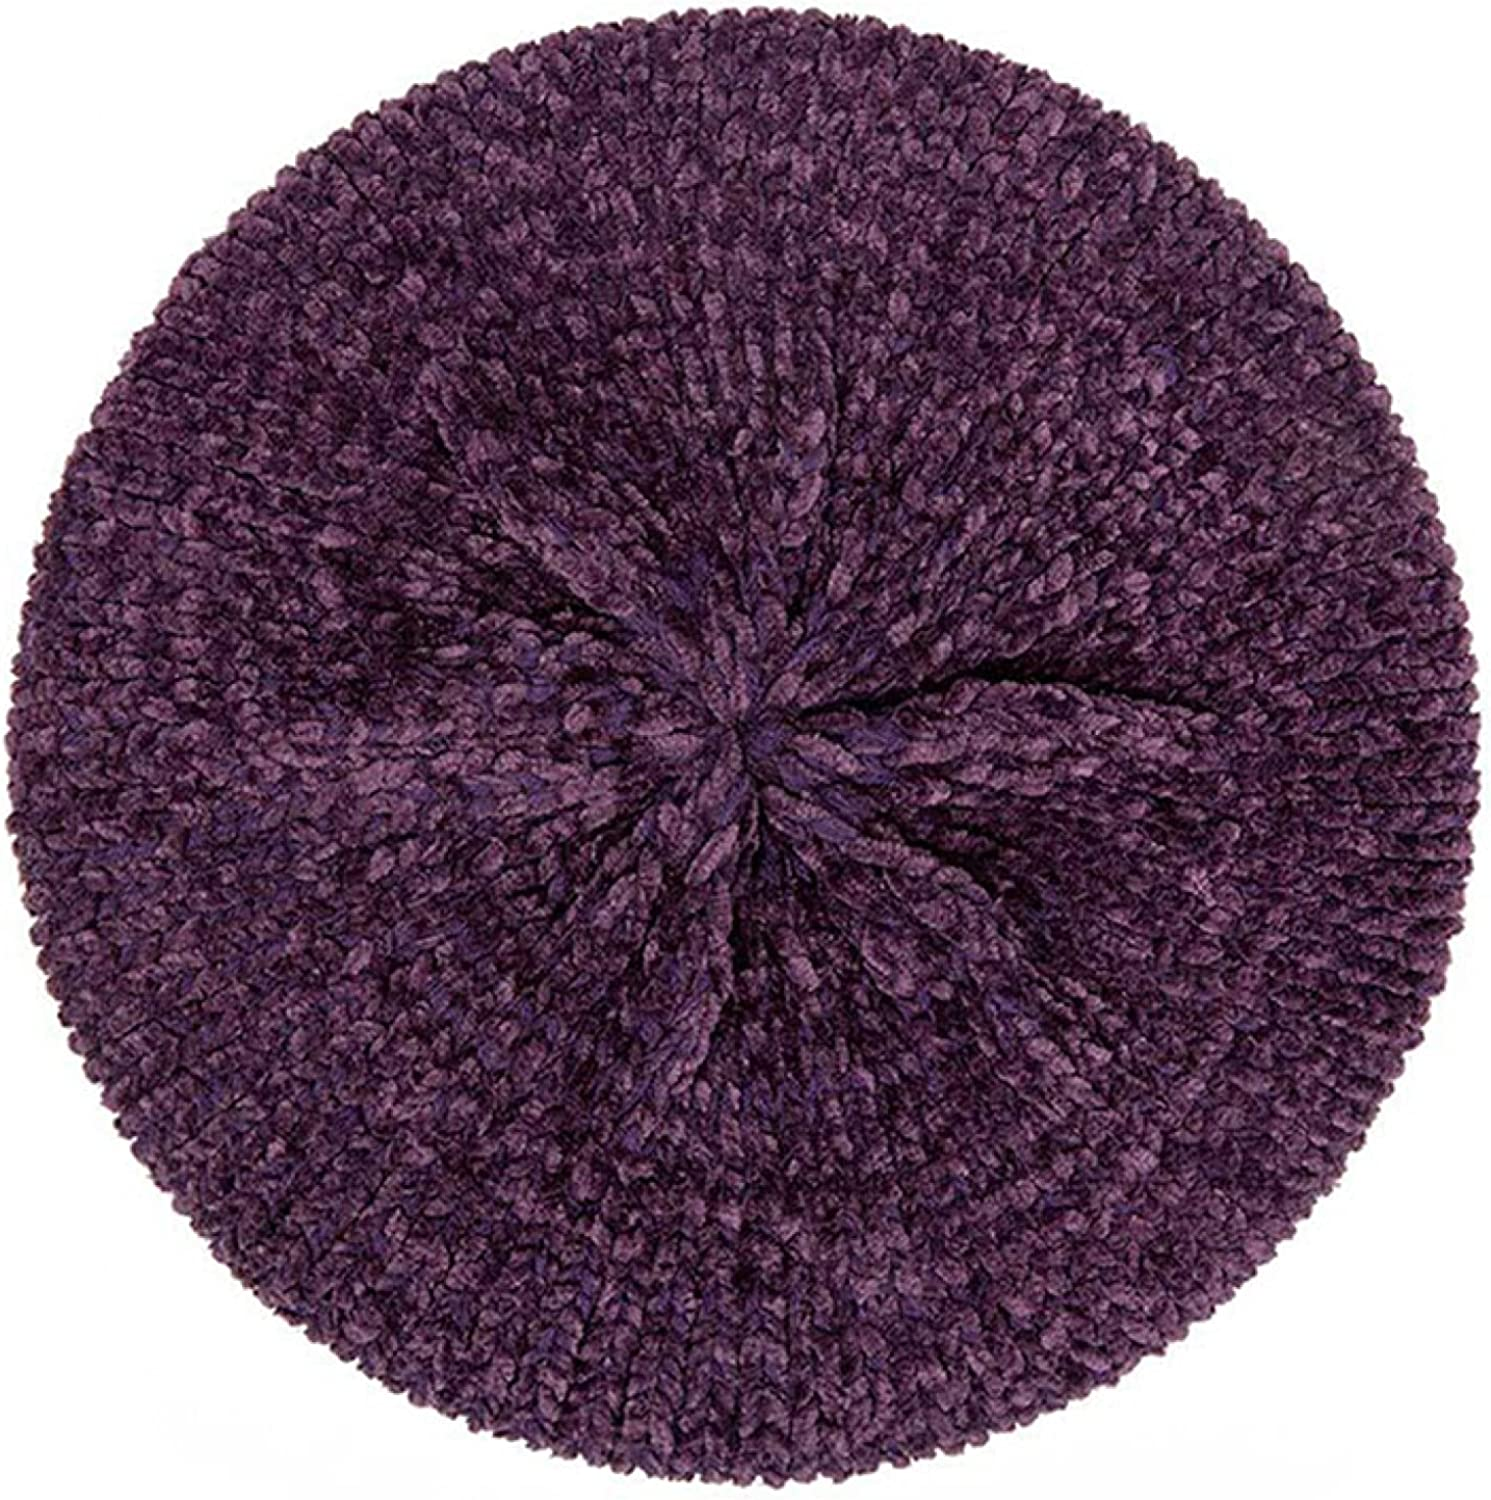 Stylish Berets for Women Super intense SALE Ranking TOP3 Chenille Warm Hat Winter Knitted